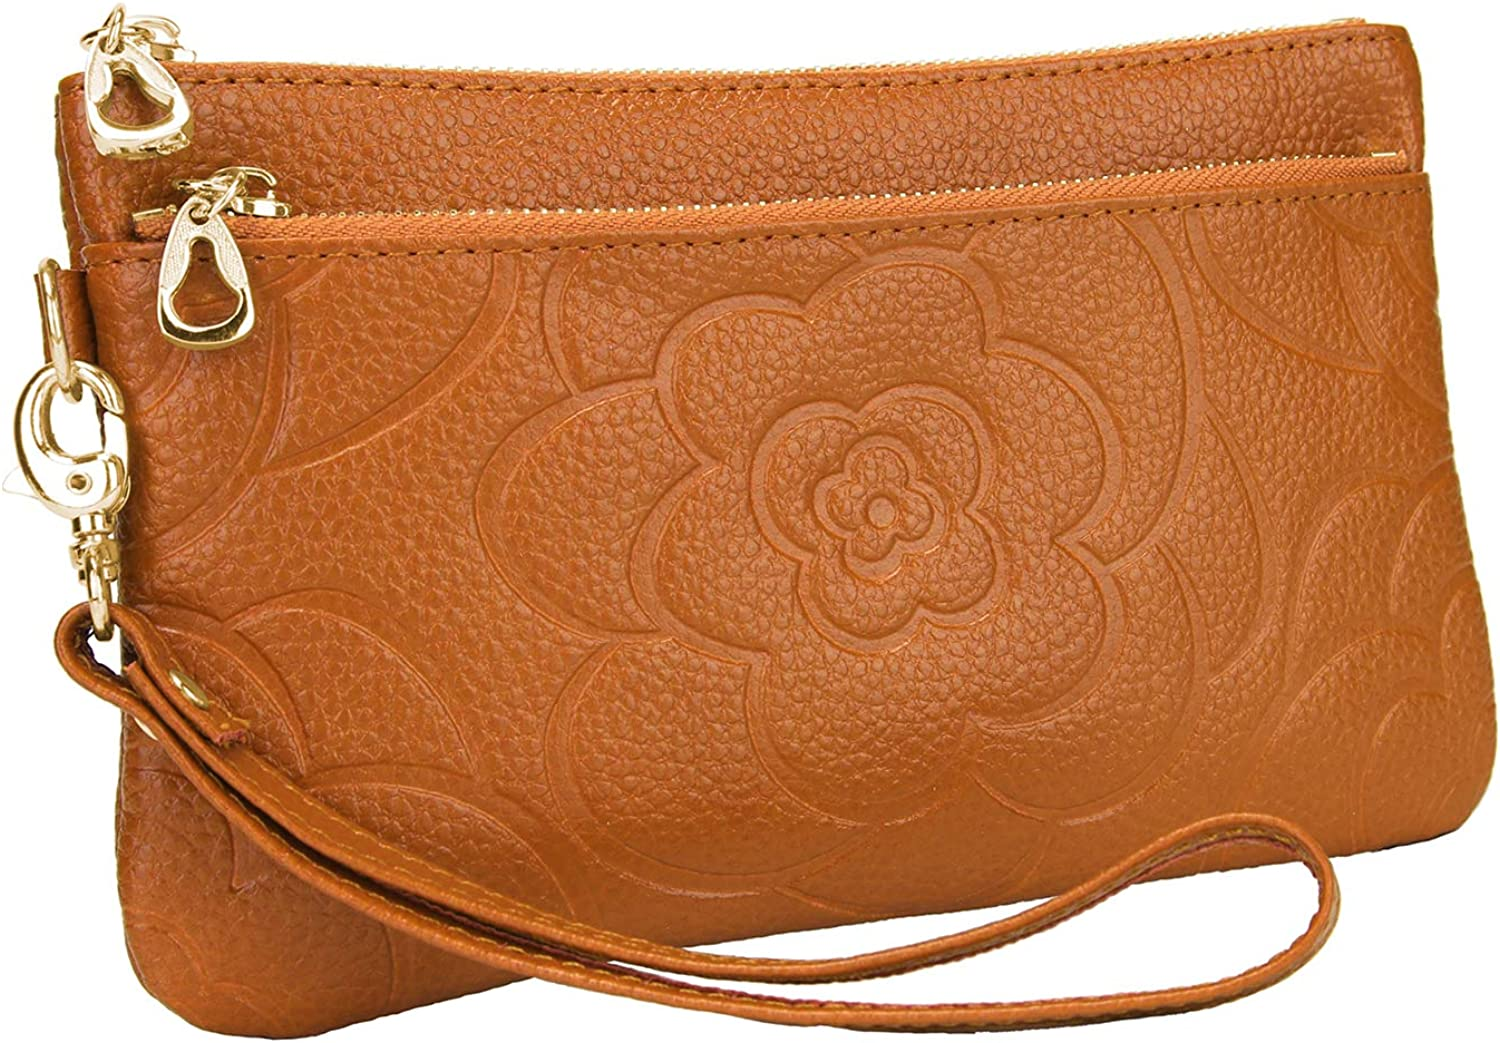 YALUXE Wristlet for Women Real Leather Flower Rose Large Clutch Wallet Phone Pro Max